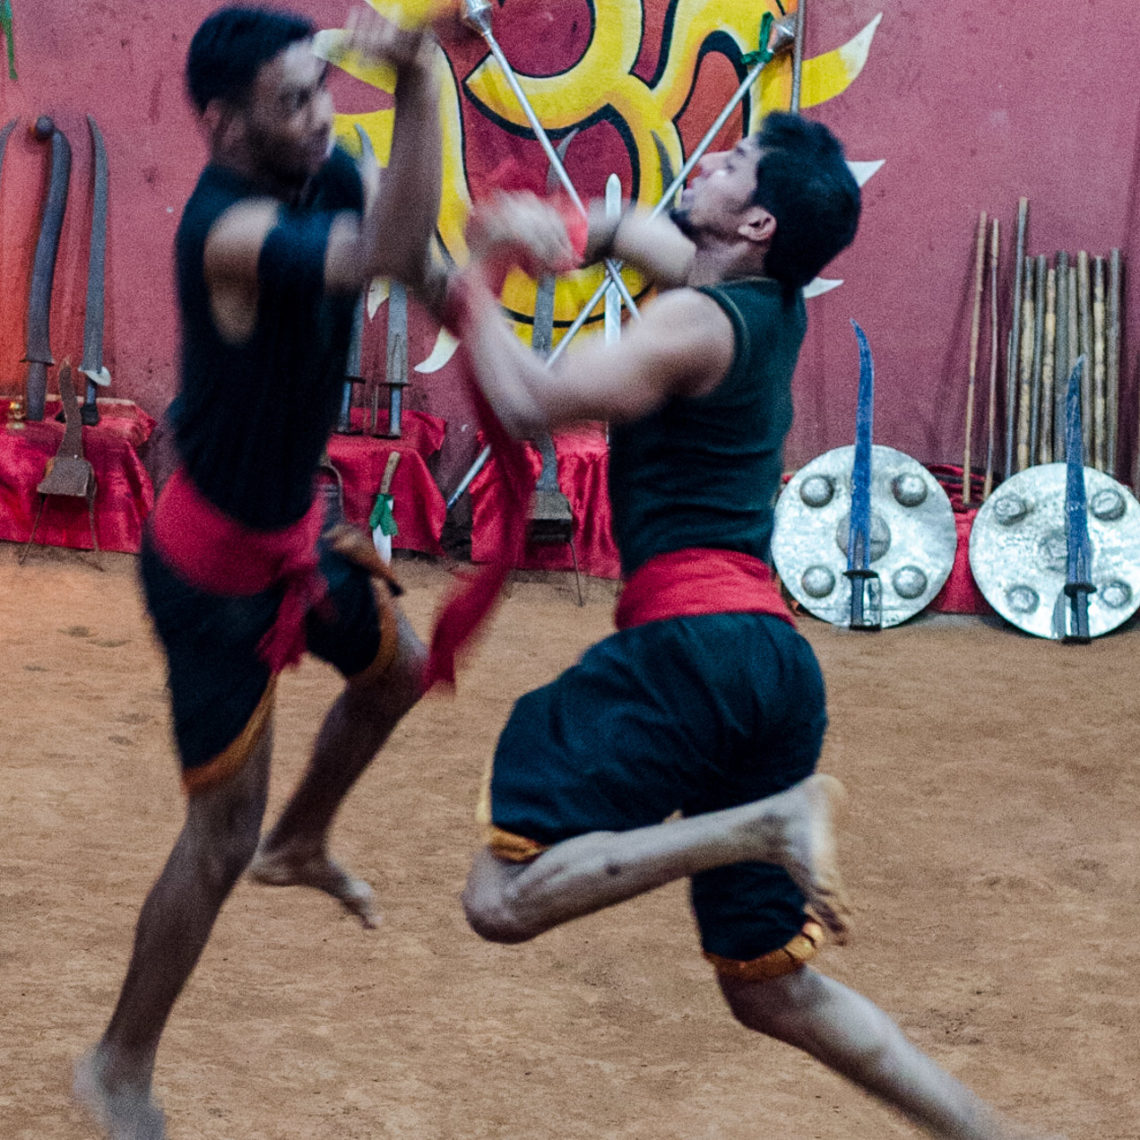 Kalaripayattu Martial Arts Demonstration at Thekkady Kerala